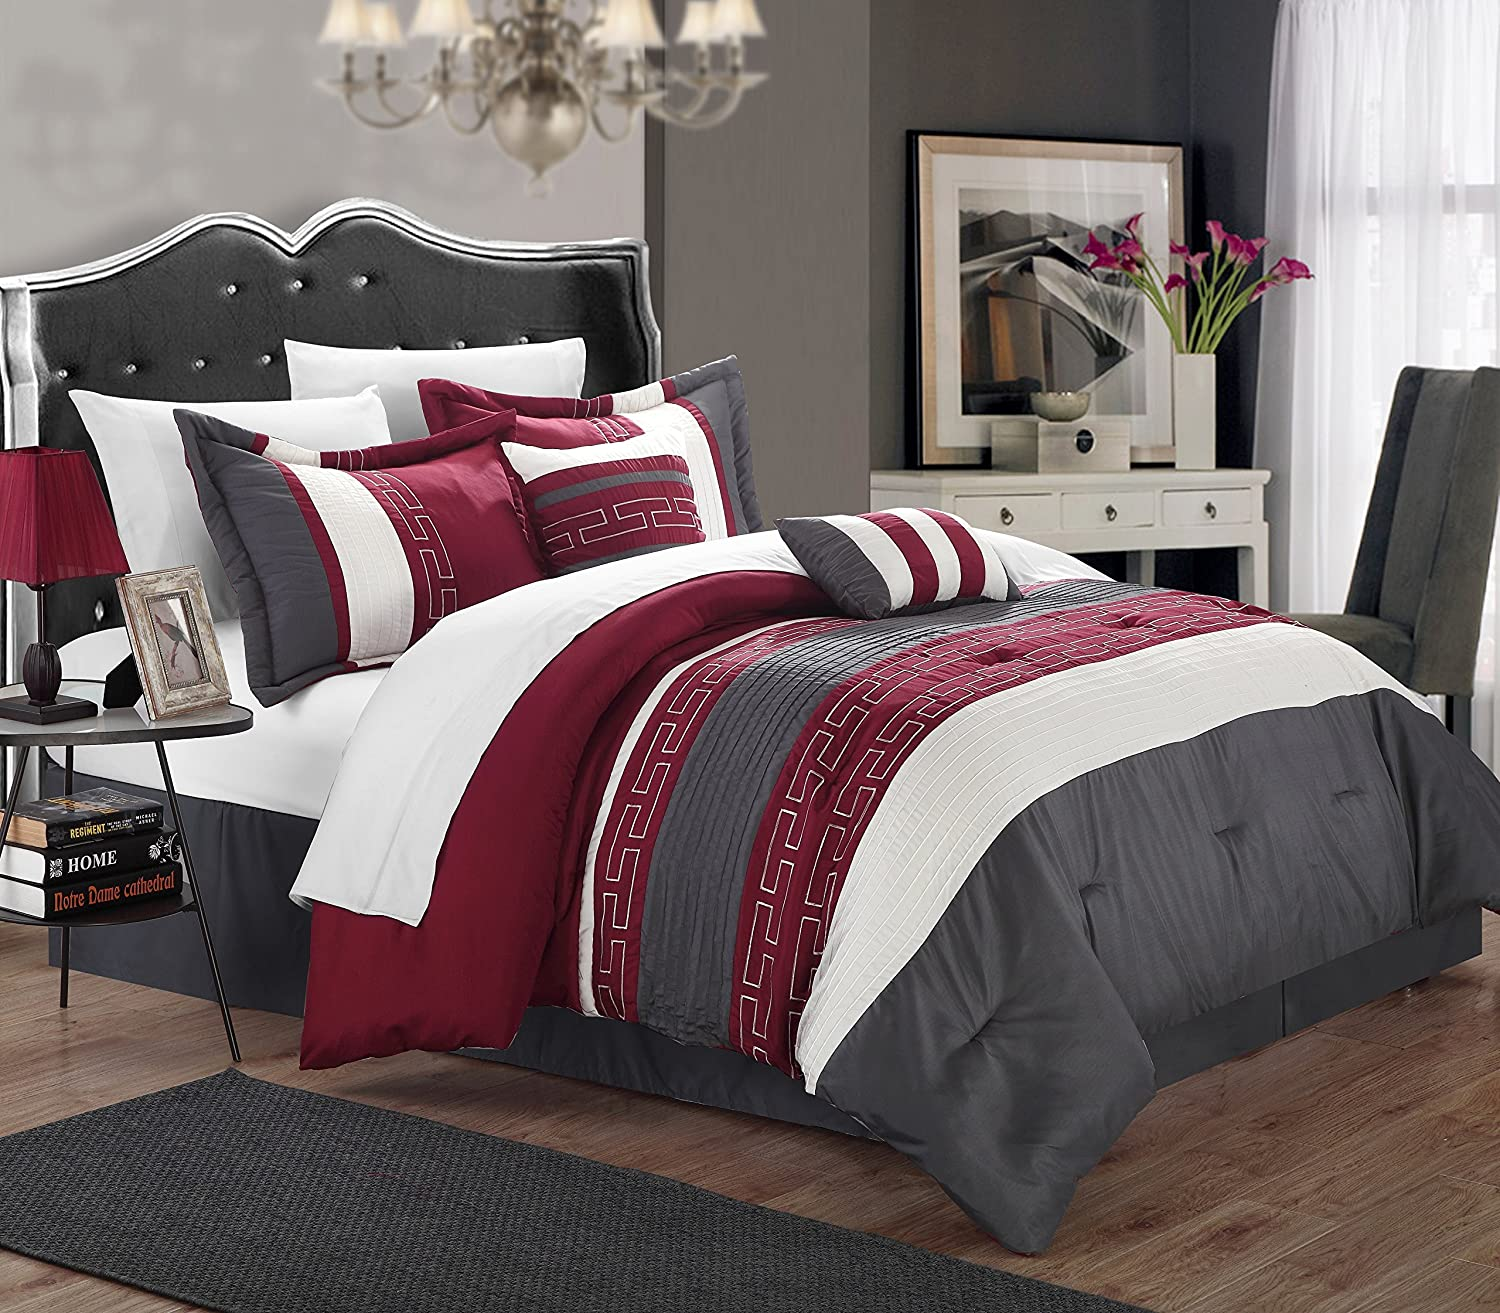 Chic Home Carlton 6-Piece Comforter Set, Queen Size, Burgundy